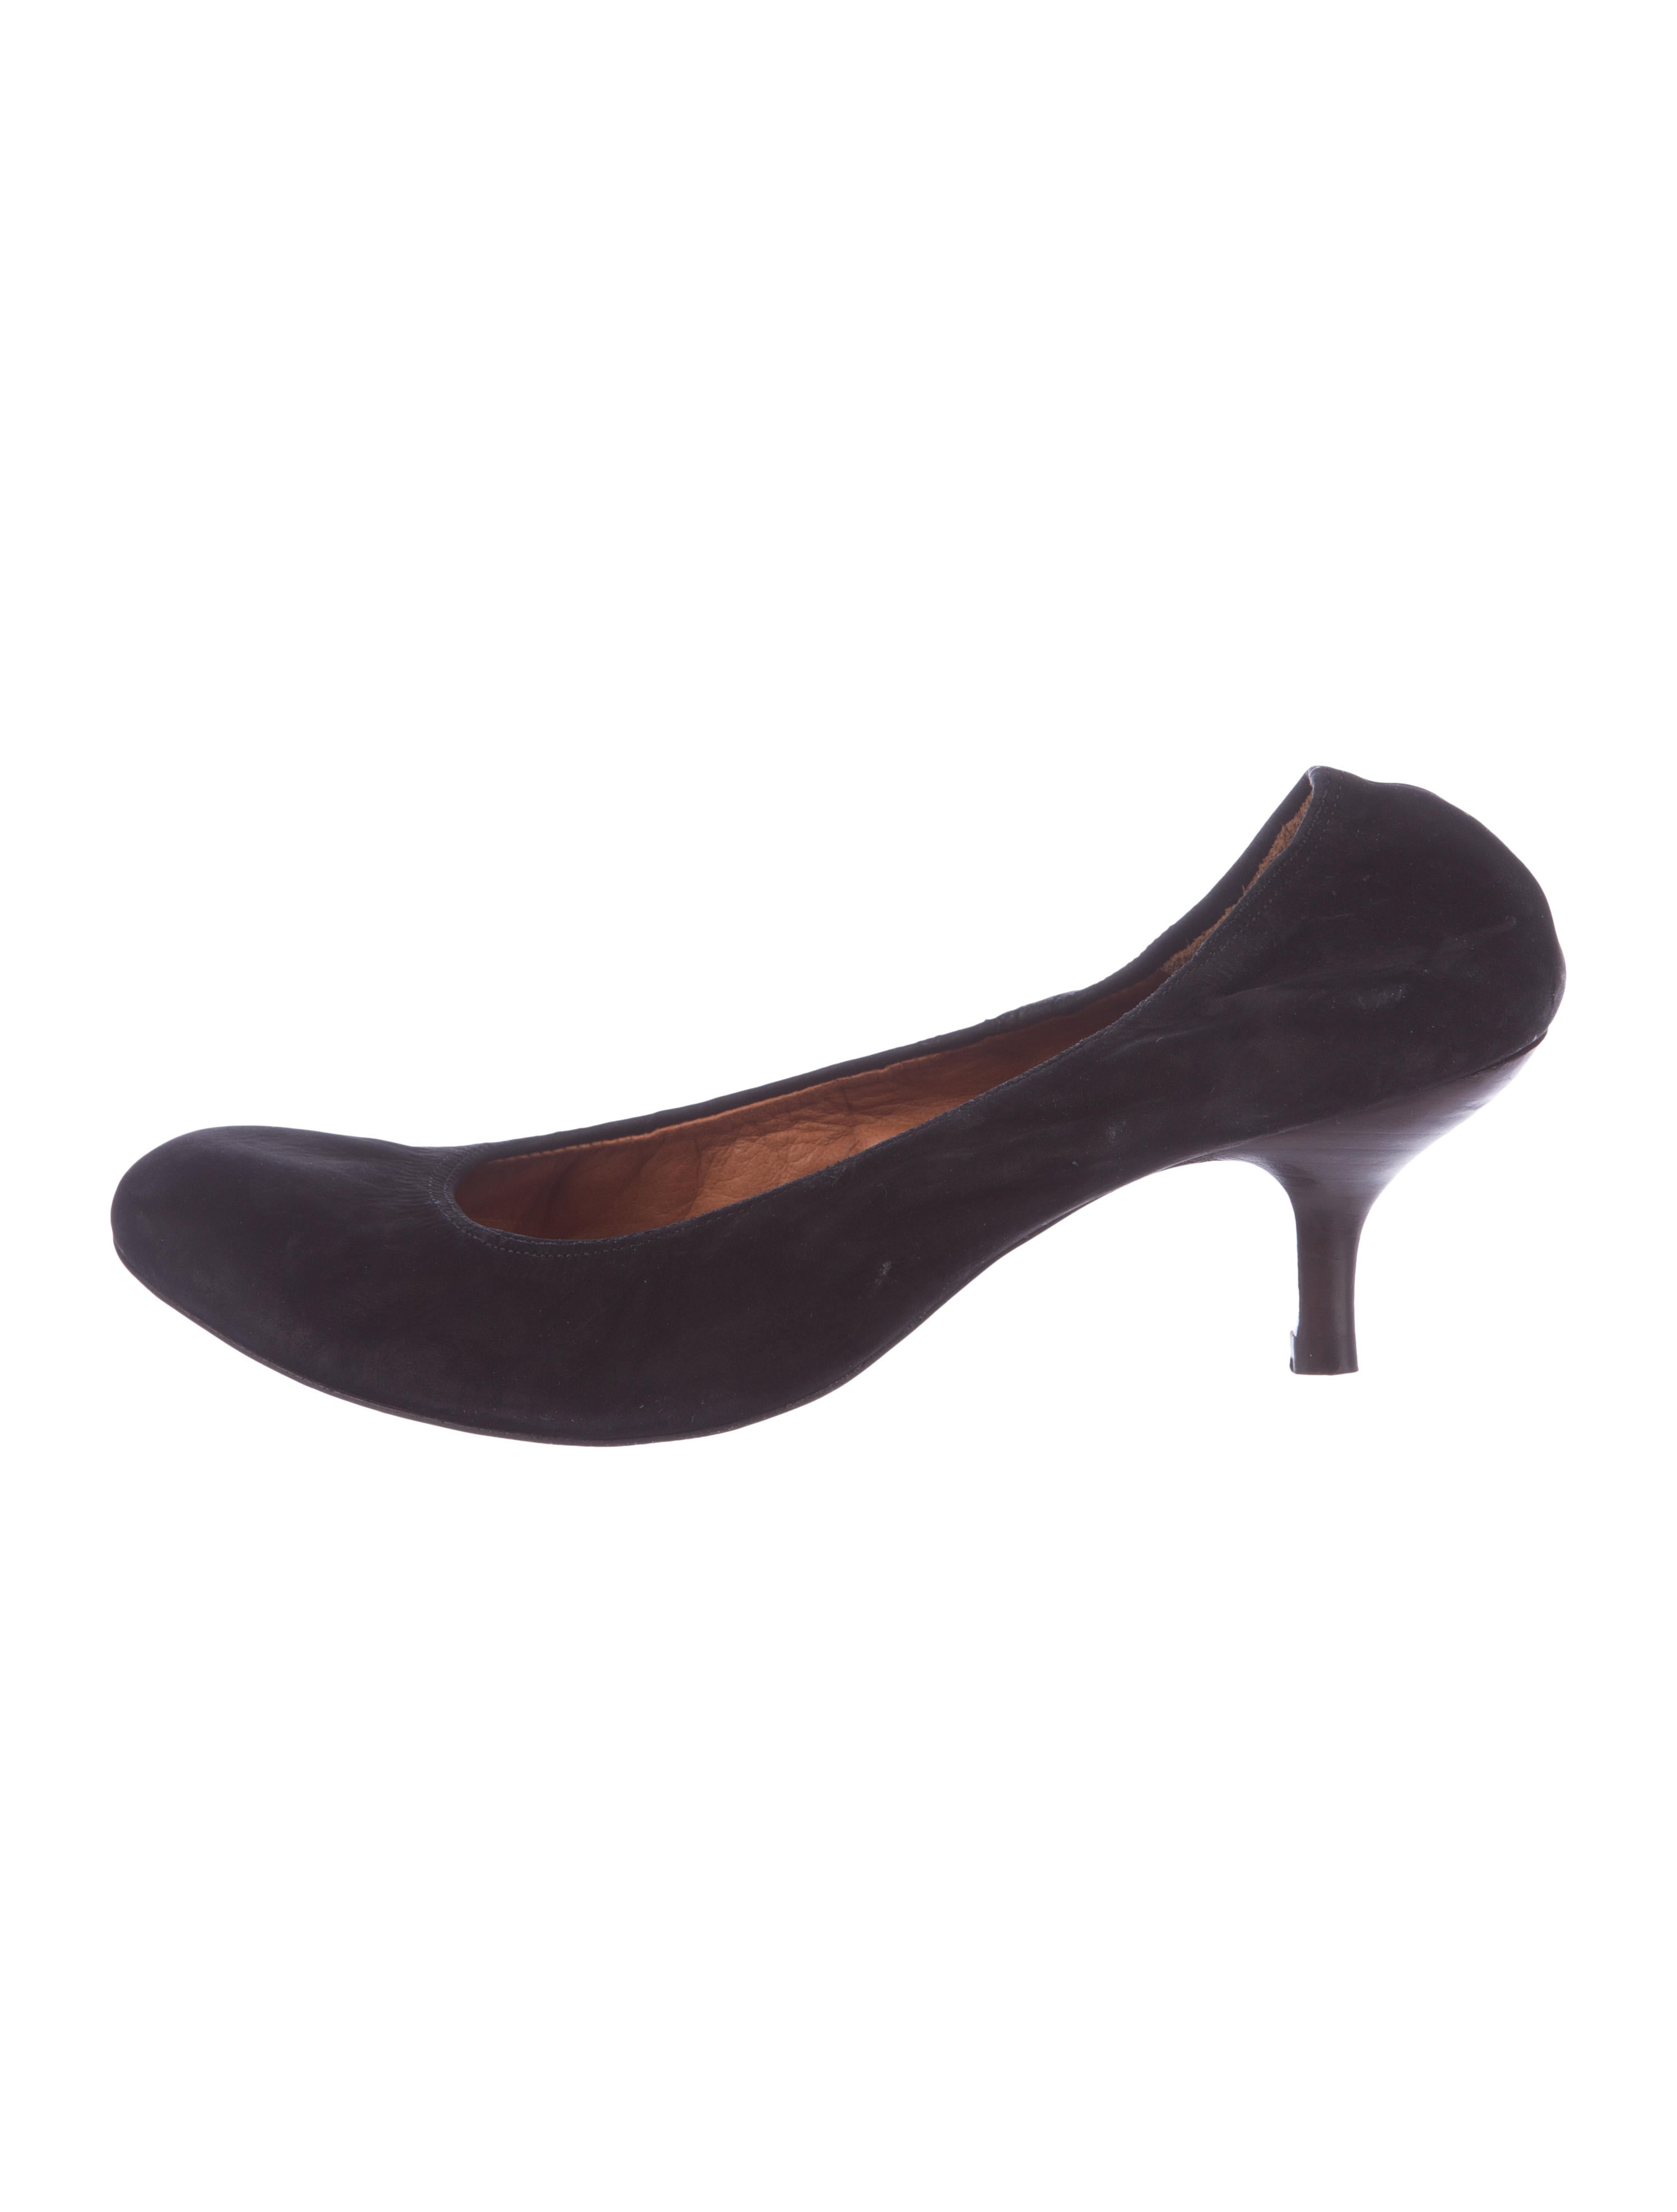 Lanvin Suede Round-Toe Pumps best deals real cheap online pcWDcUgTu